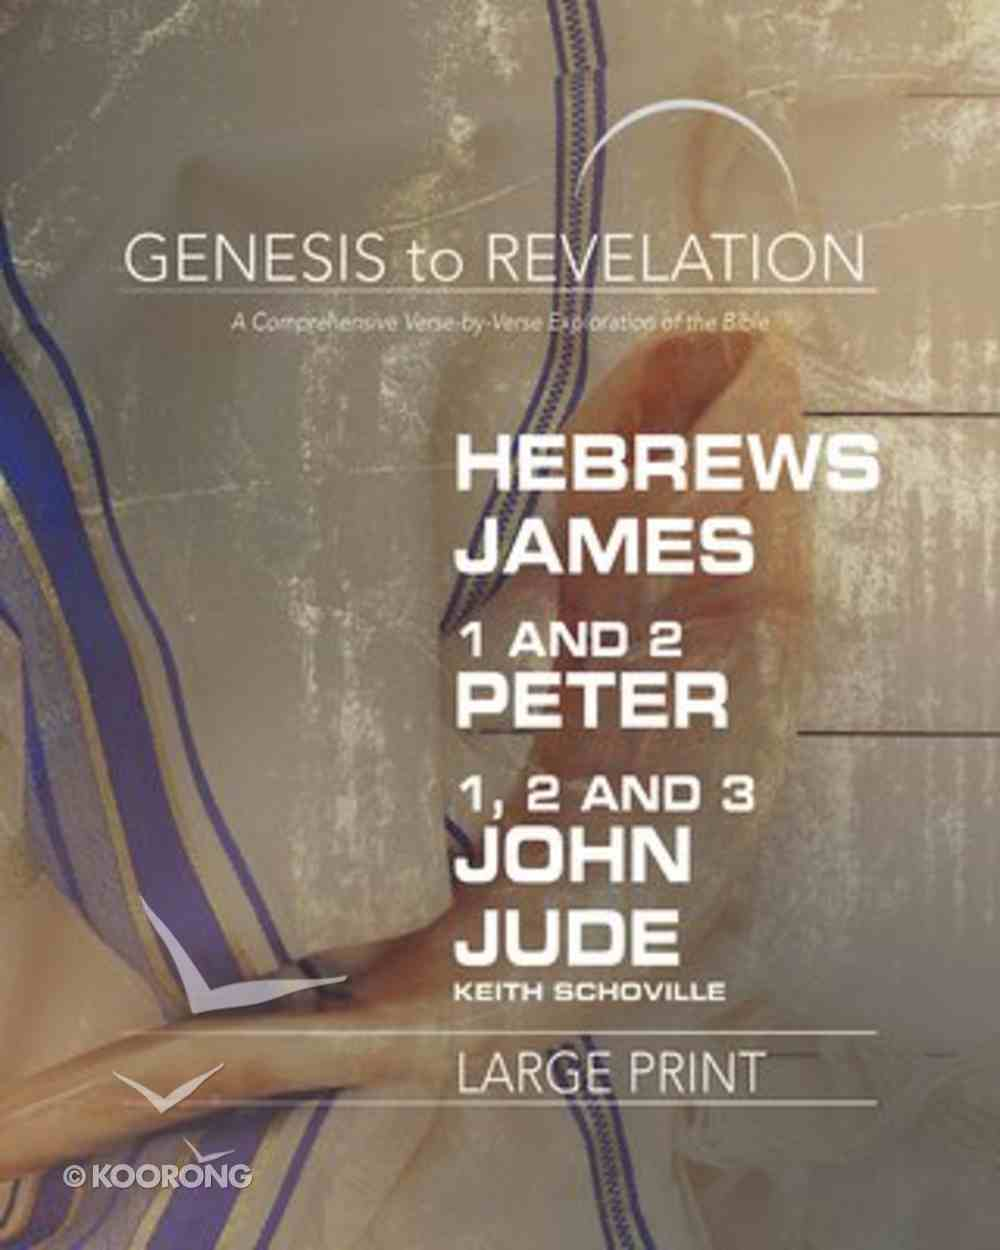 Hebrews, James, 1&2 Peter, 1,2,3 John, Jude : A Comprehensive Verse-By-Verse Exploration of the Bible (Participant Book, Large Print) (Genesis To Revelation Series) Paperback